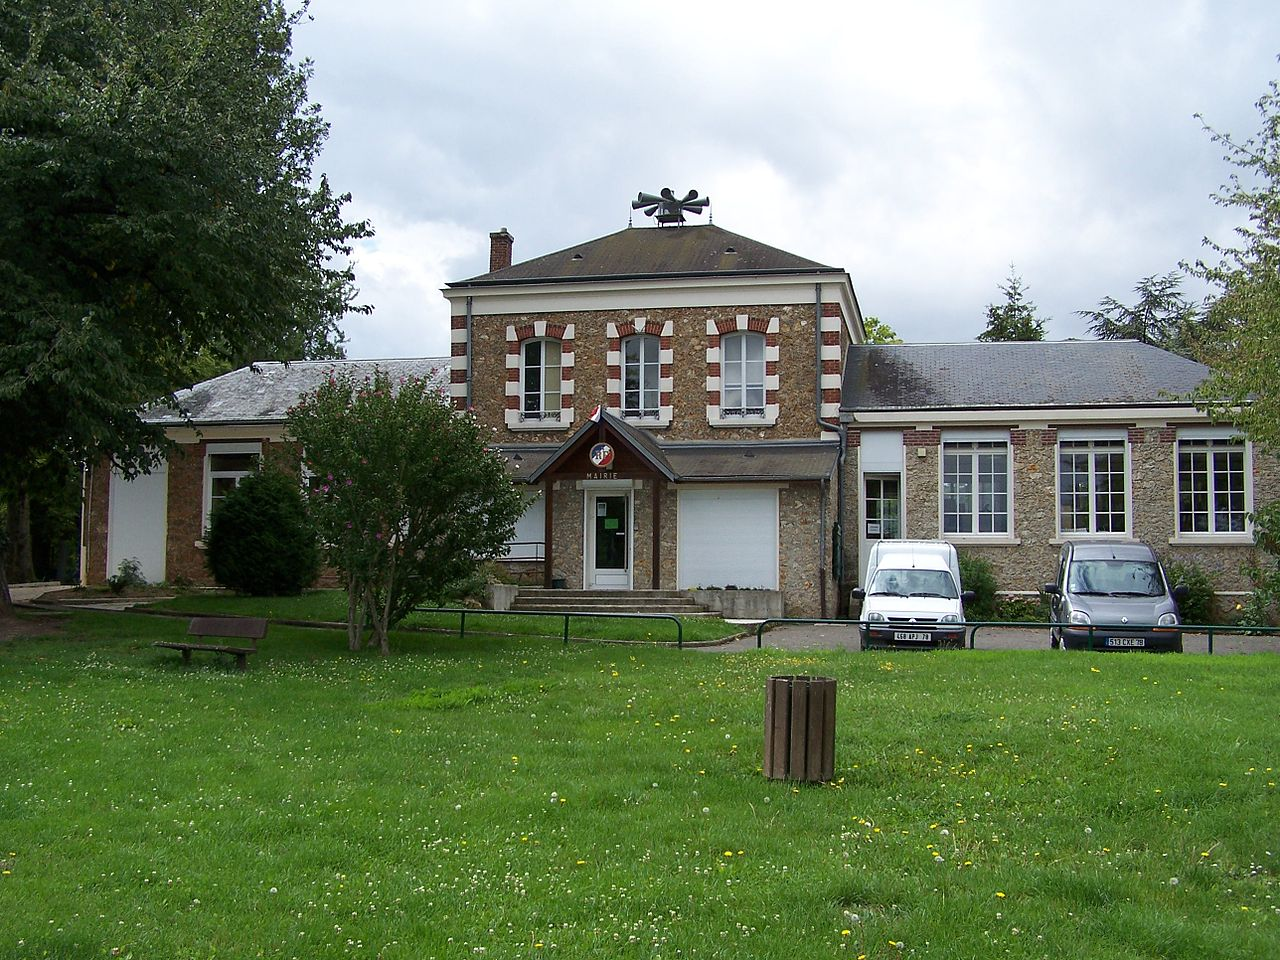 saint-germain-de-la-grange